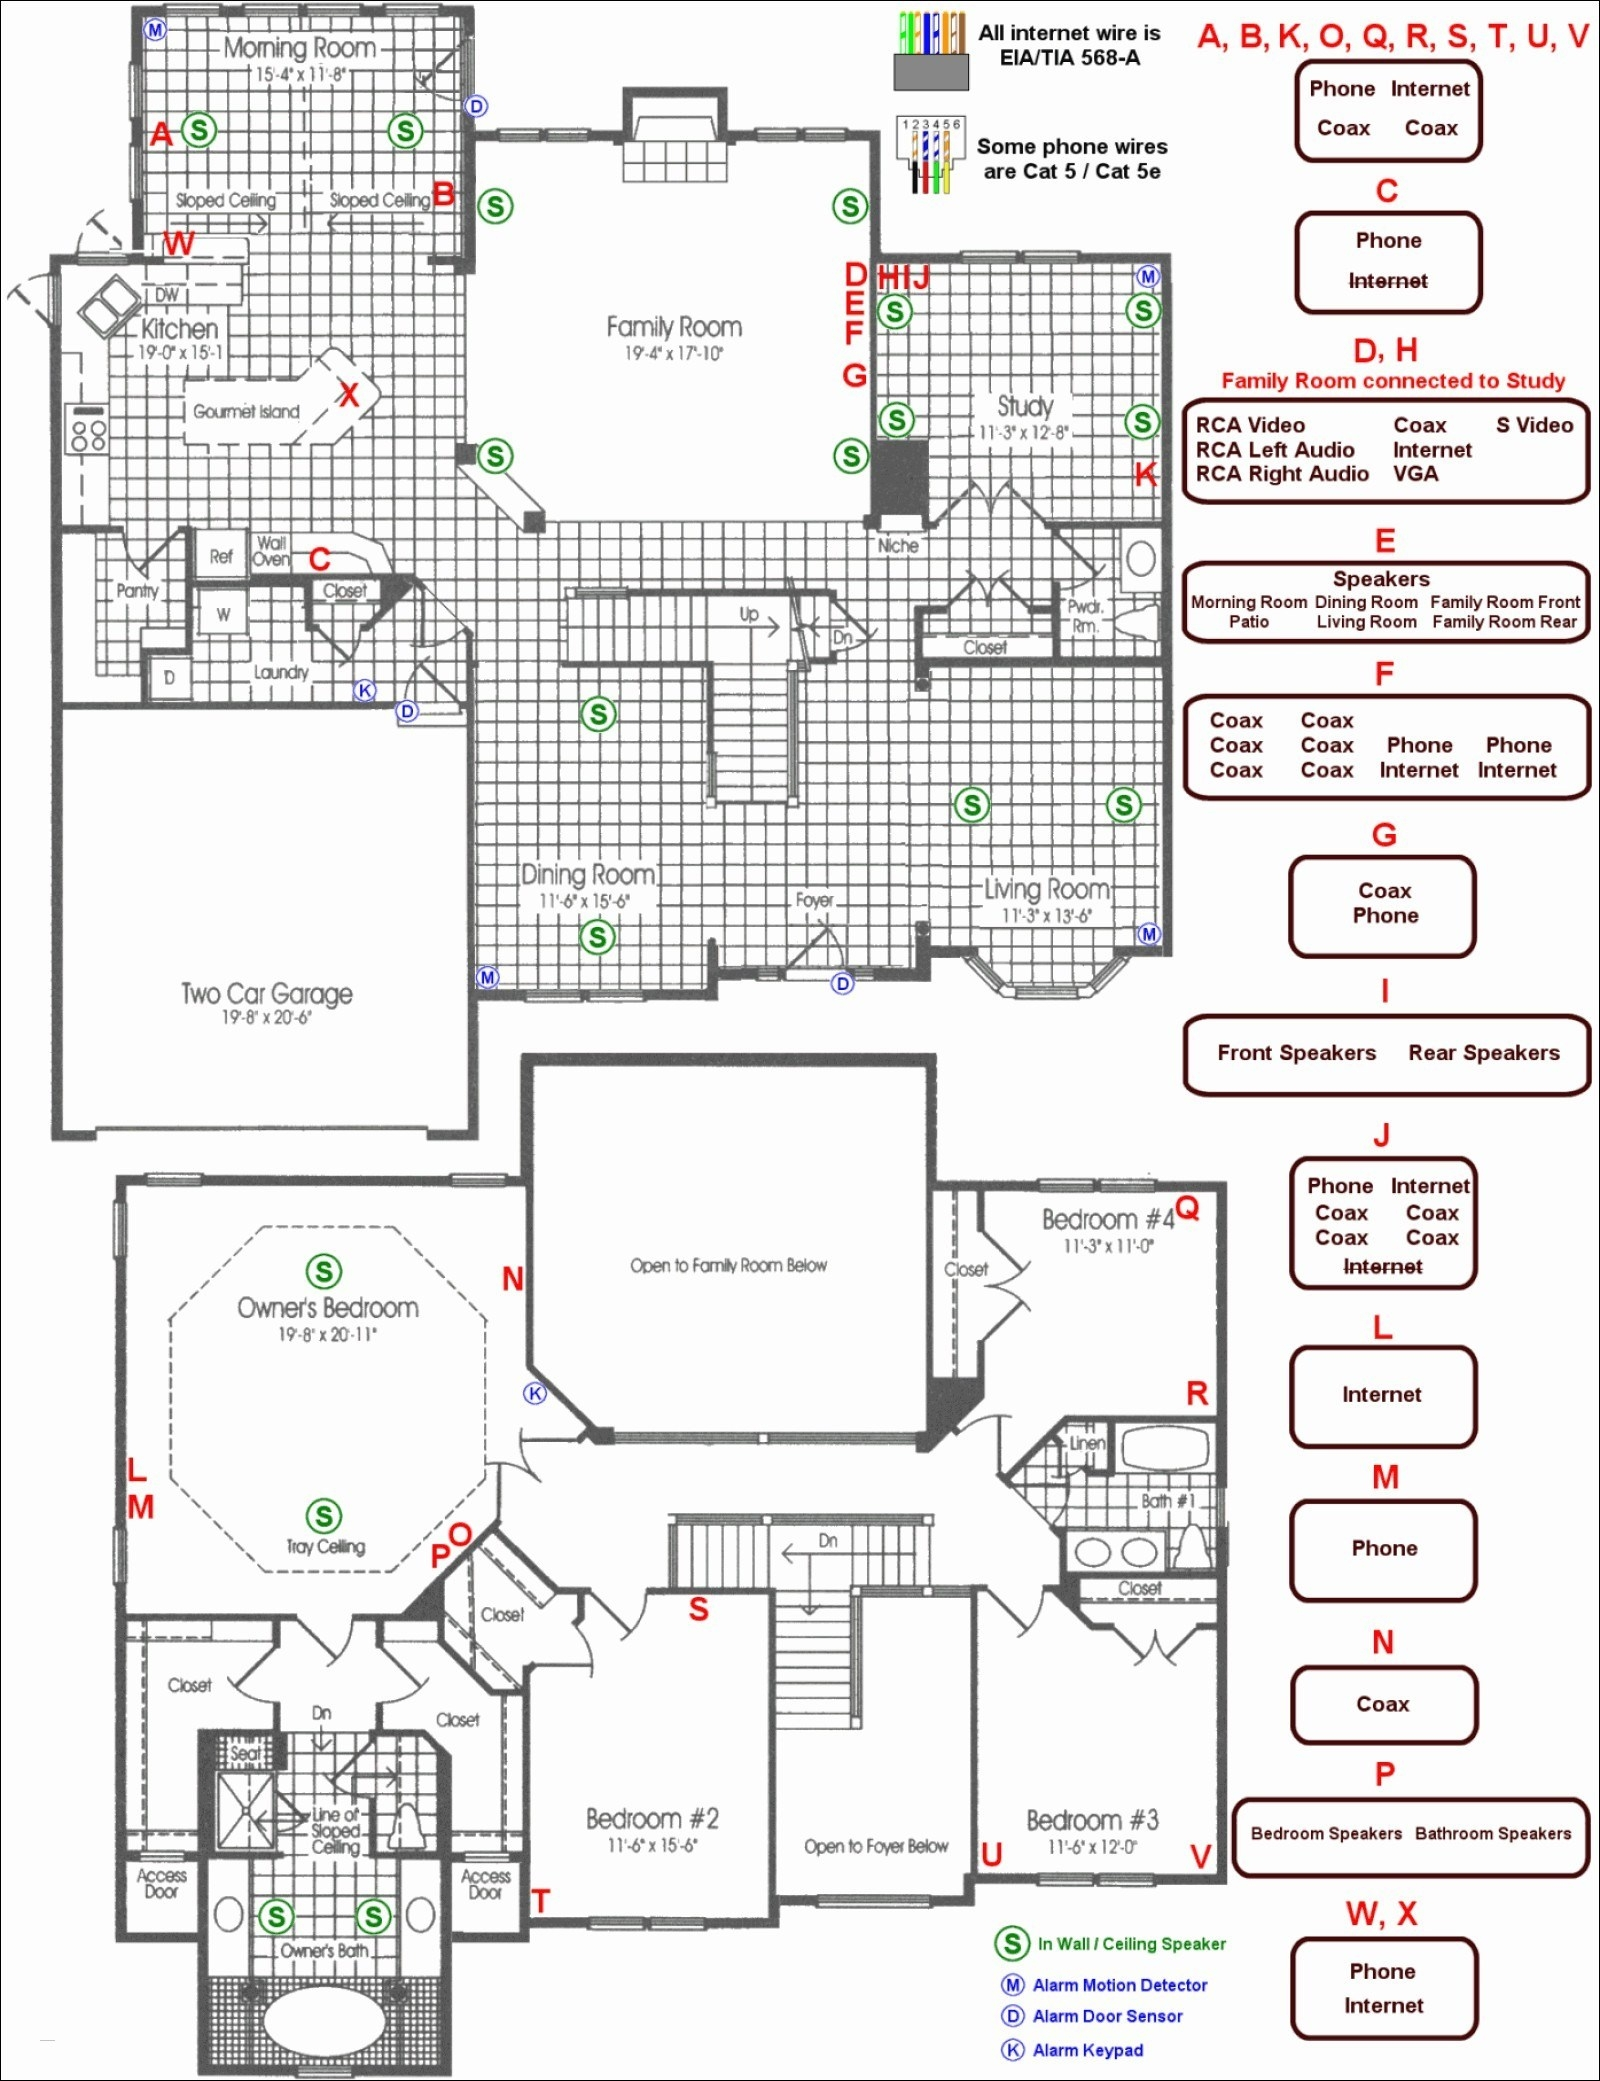 house wiring diagram examples Download-basic house wiring diagram Collection home wiring diagram Collection Aktive Crossoverfrequenzweiche Mit Max4478 360customs Crossover 6-n